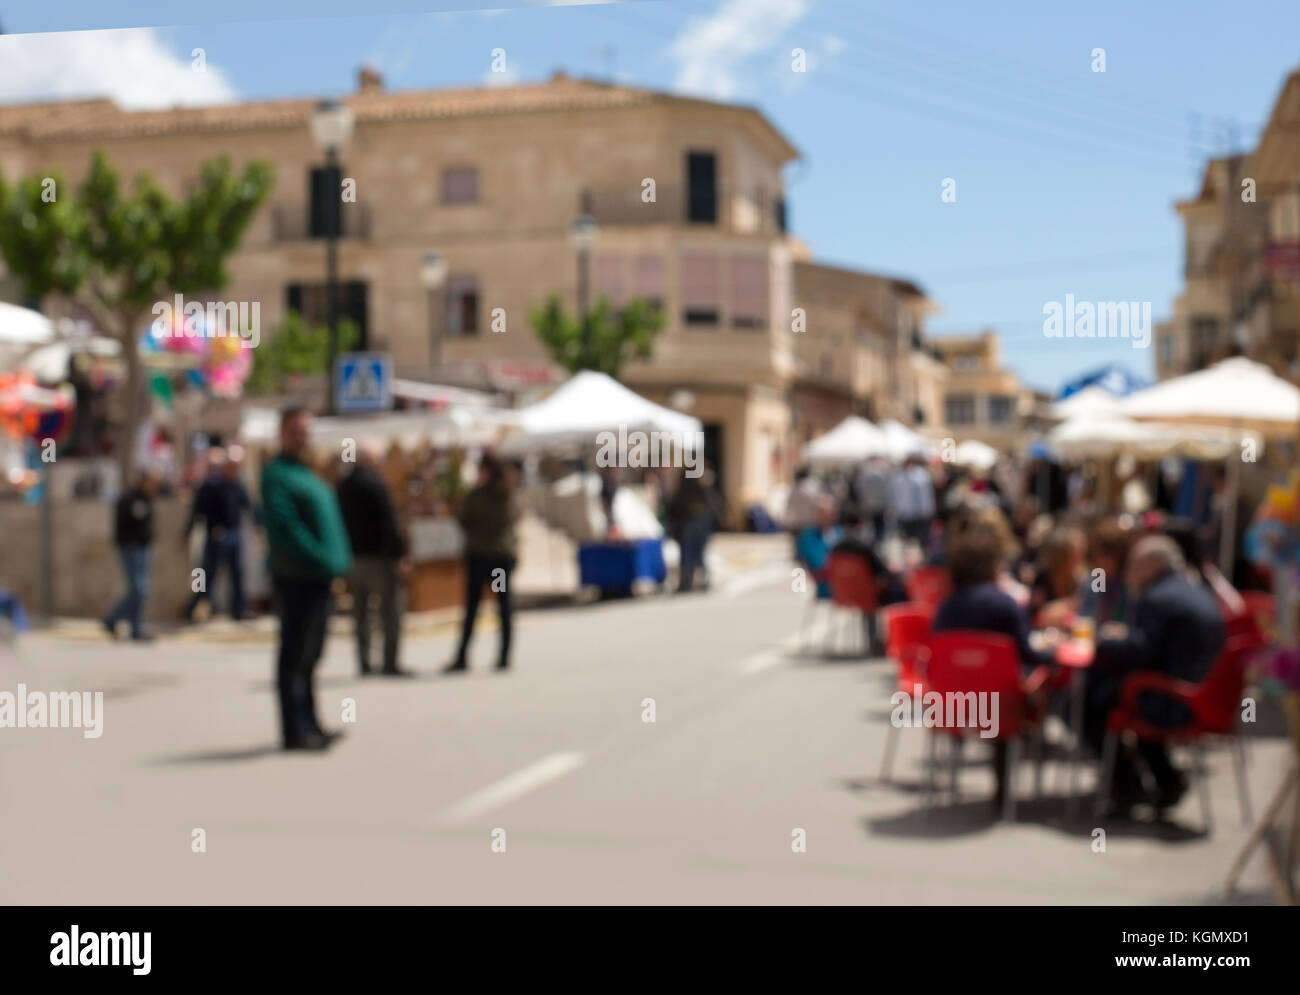 Abstract blur image of day market on street for background usage. - Stock Image